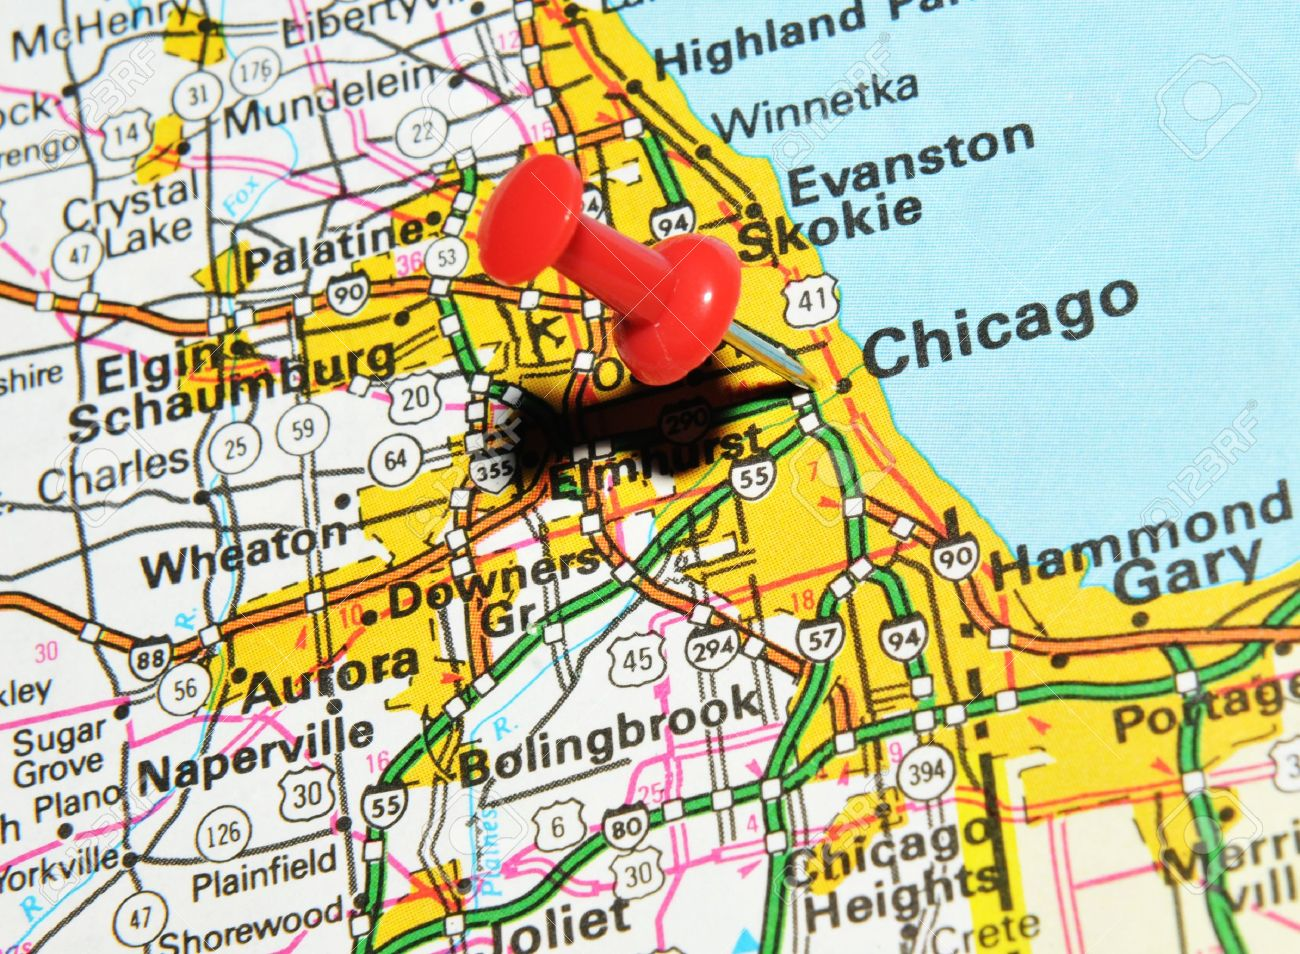 London Uk 13 June 2012 Chicago Illinois Marked With Red Pushpin